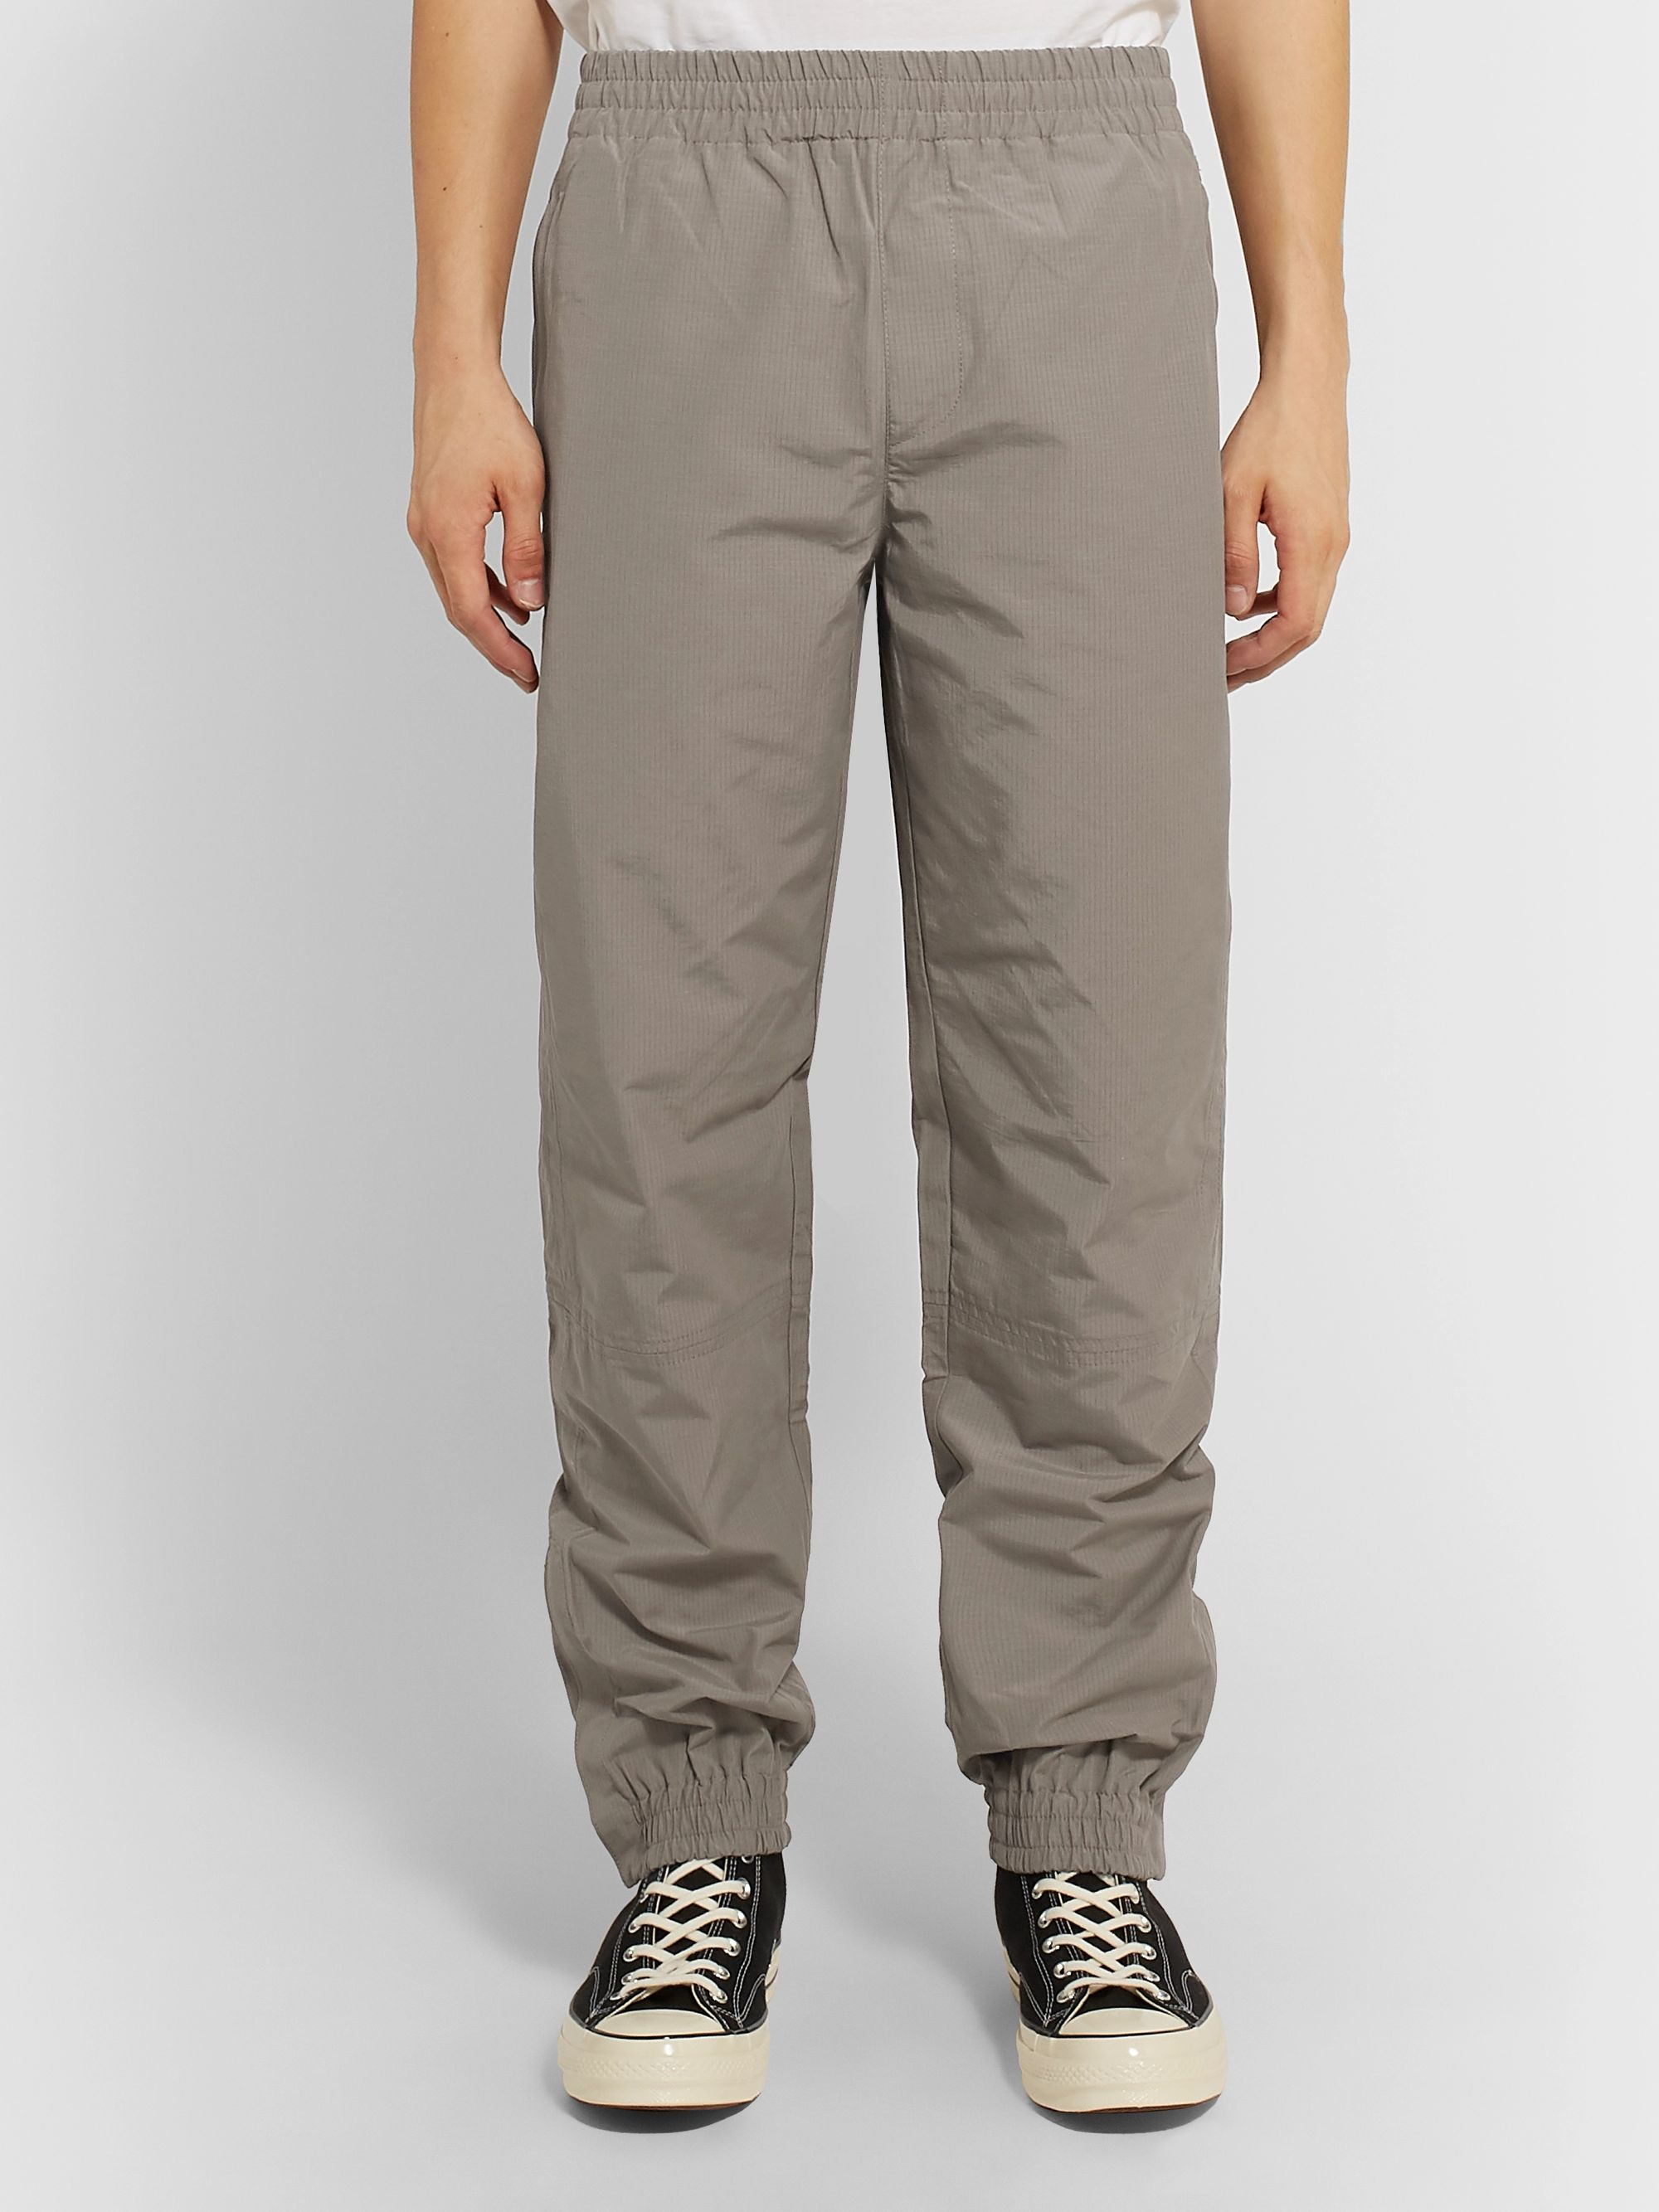 Très Bien Cotton-Blend Ripstop Sweatpants